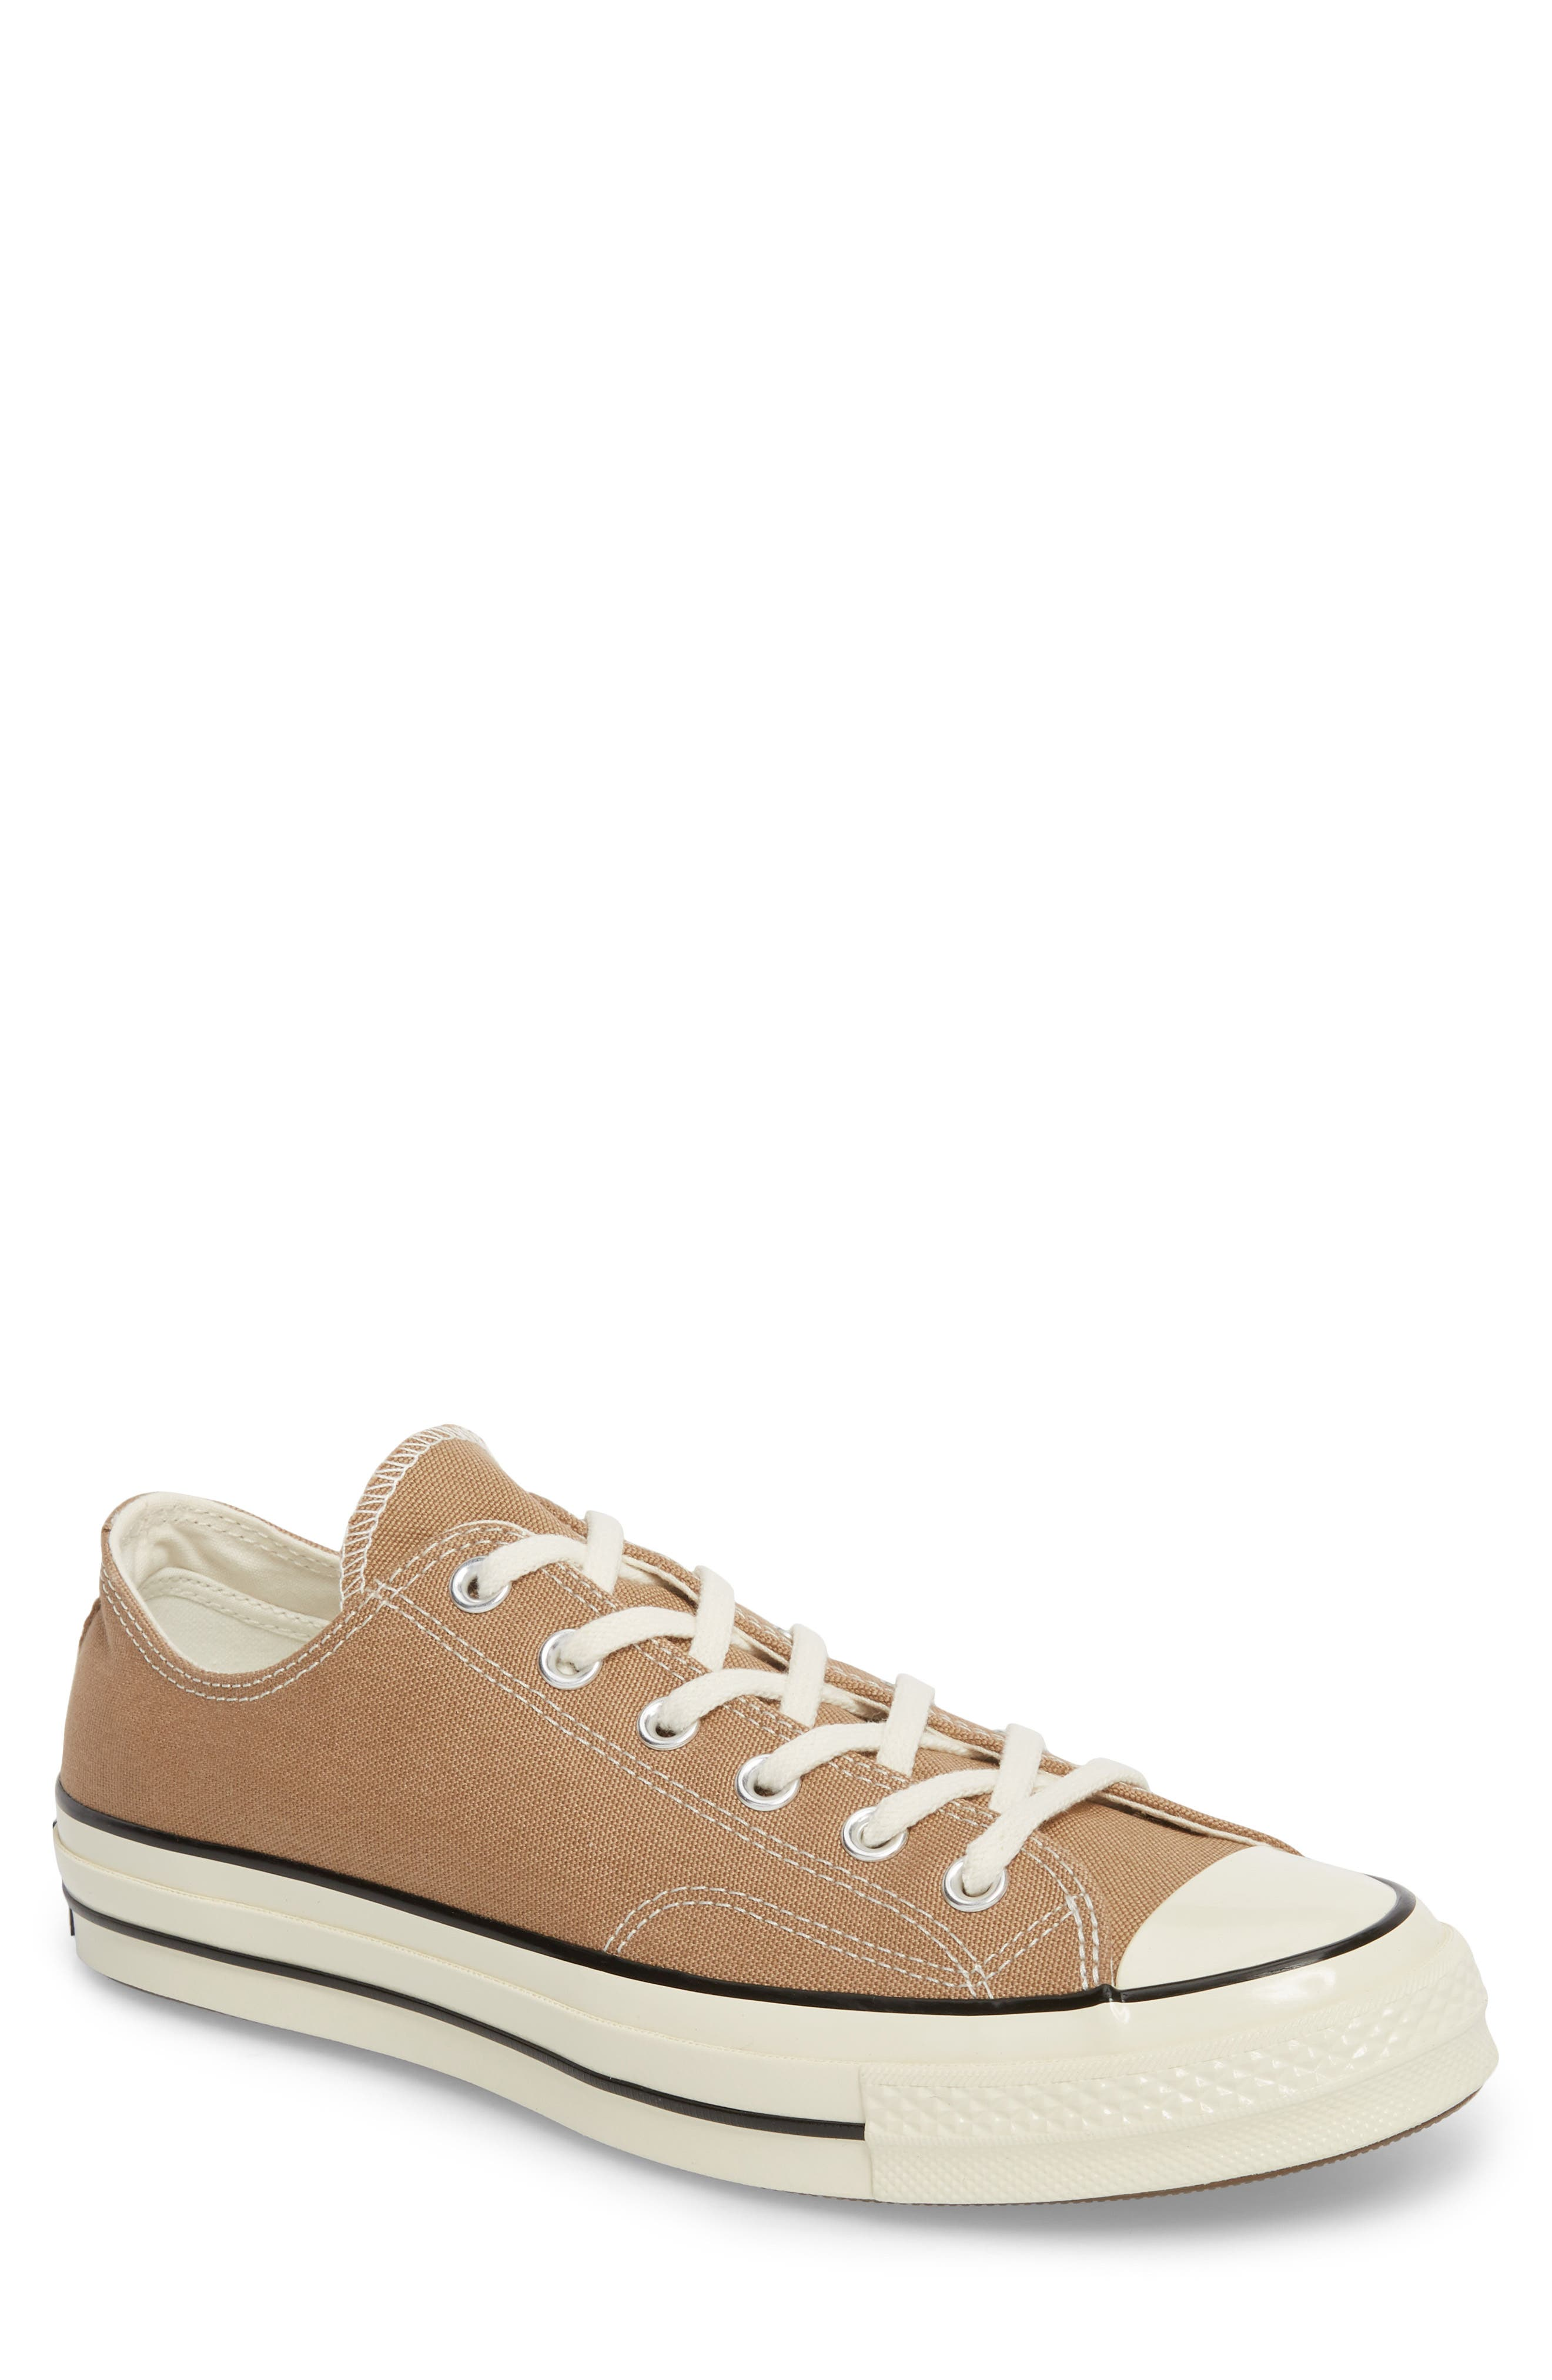 Chuck Taylor<sup>®</sup> All Star<sup>®</sup> 70 Heritage Sneaker,                             Main thumbnail 1, color,                             Teak Canvas